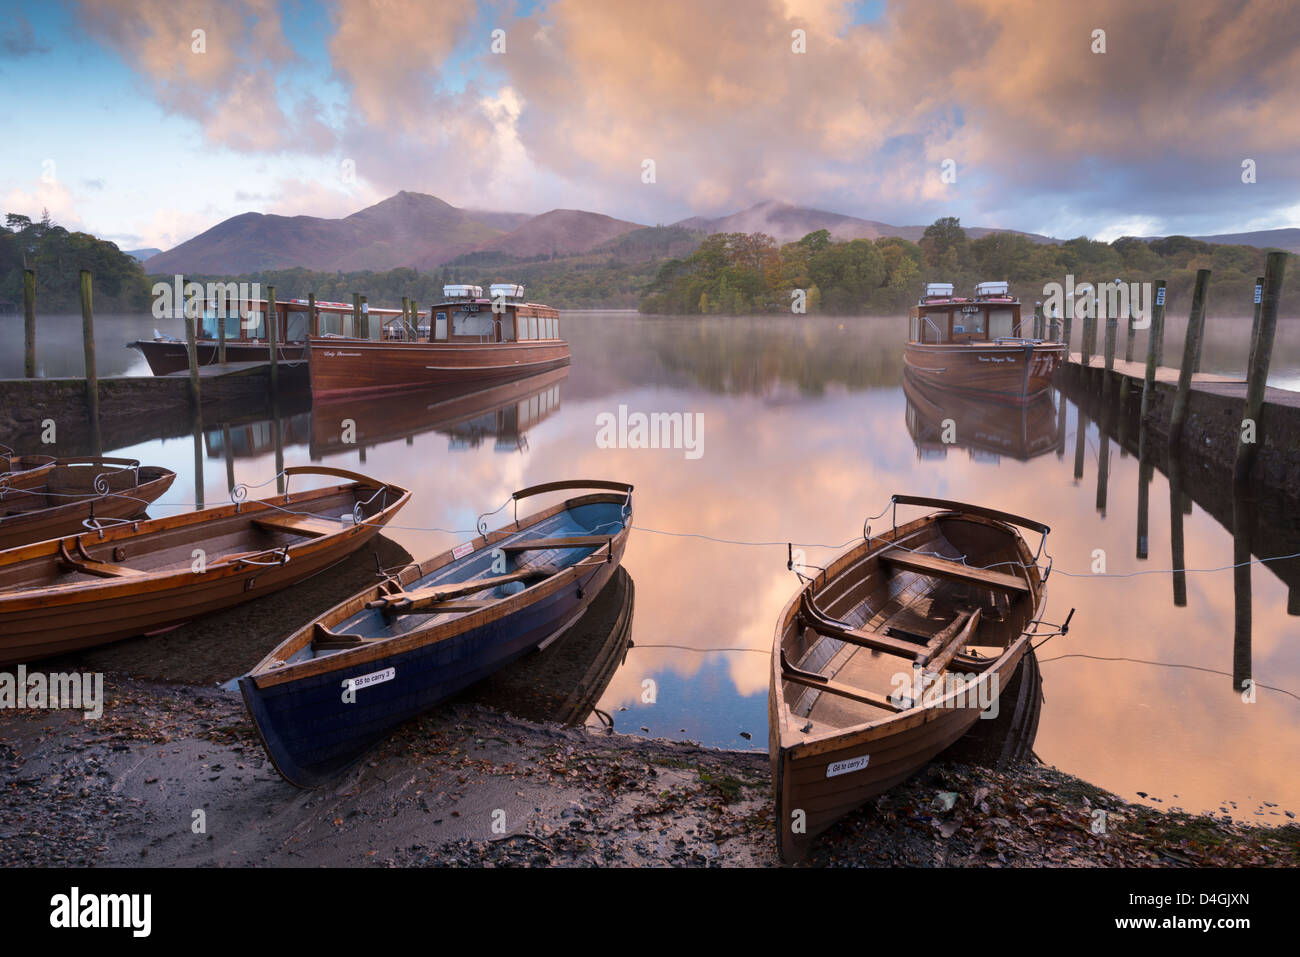 Boats and jetties near Friars Crag at dawn, Derwent Water, Lake District, Cumbria, England. Autumn (October) 2012. - Stock Image